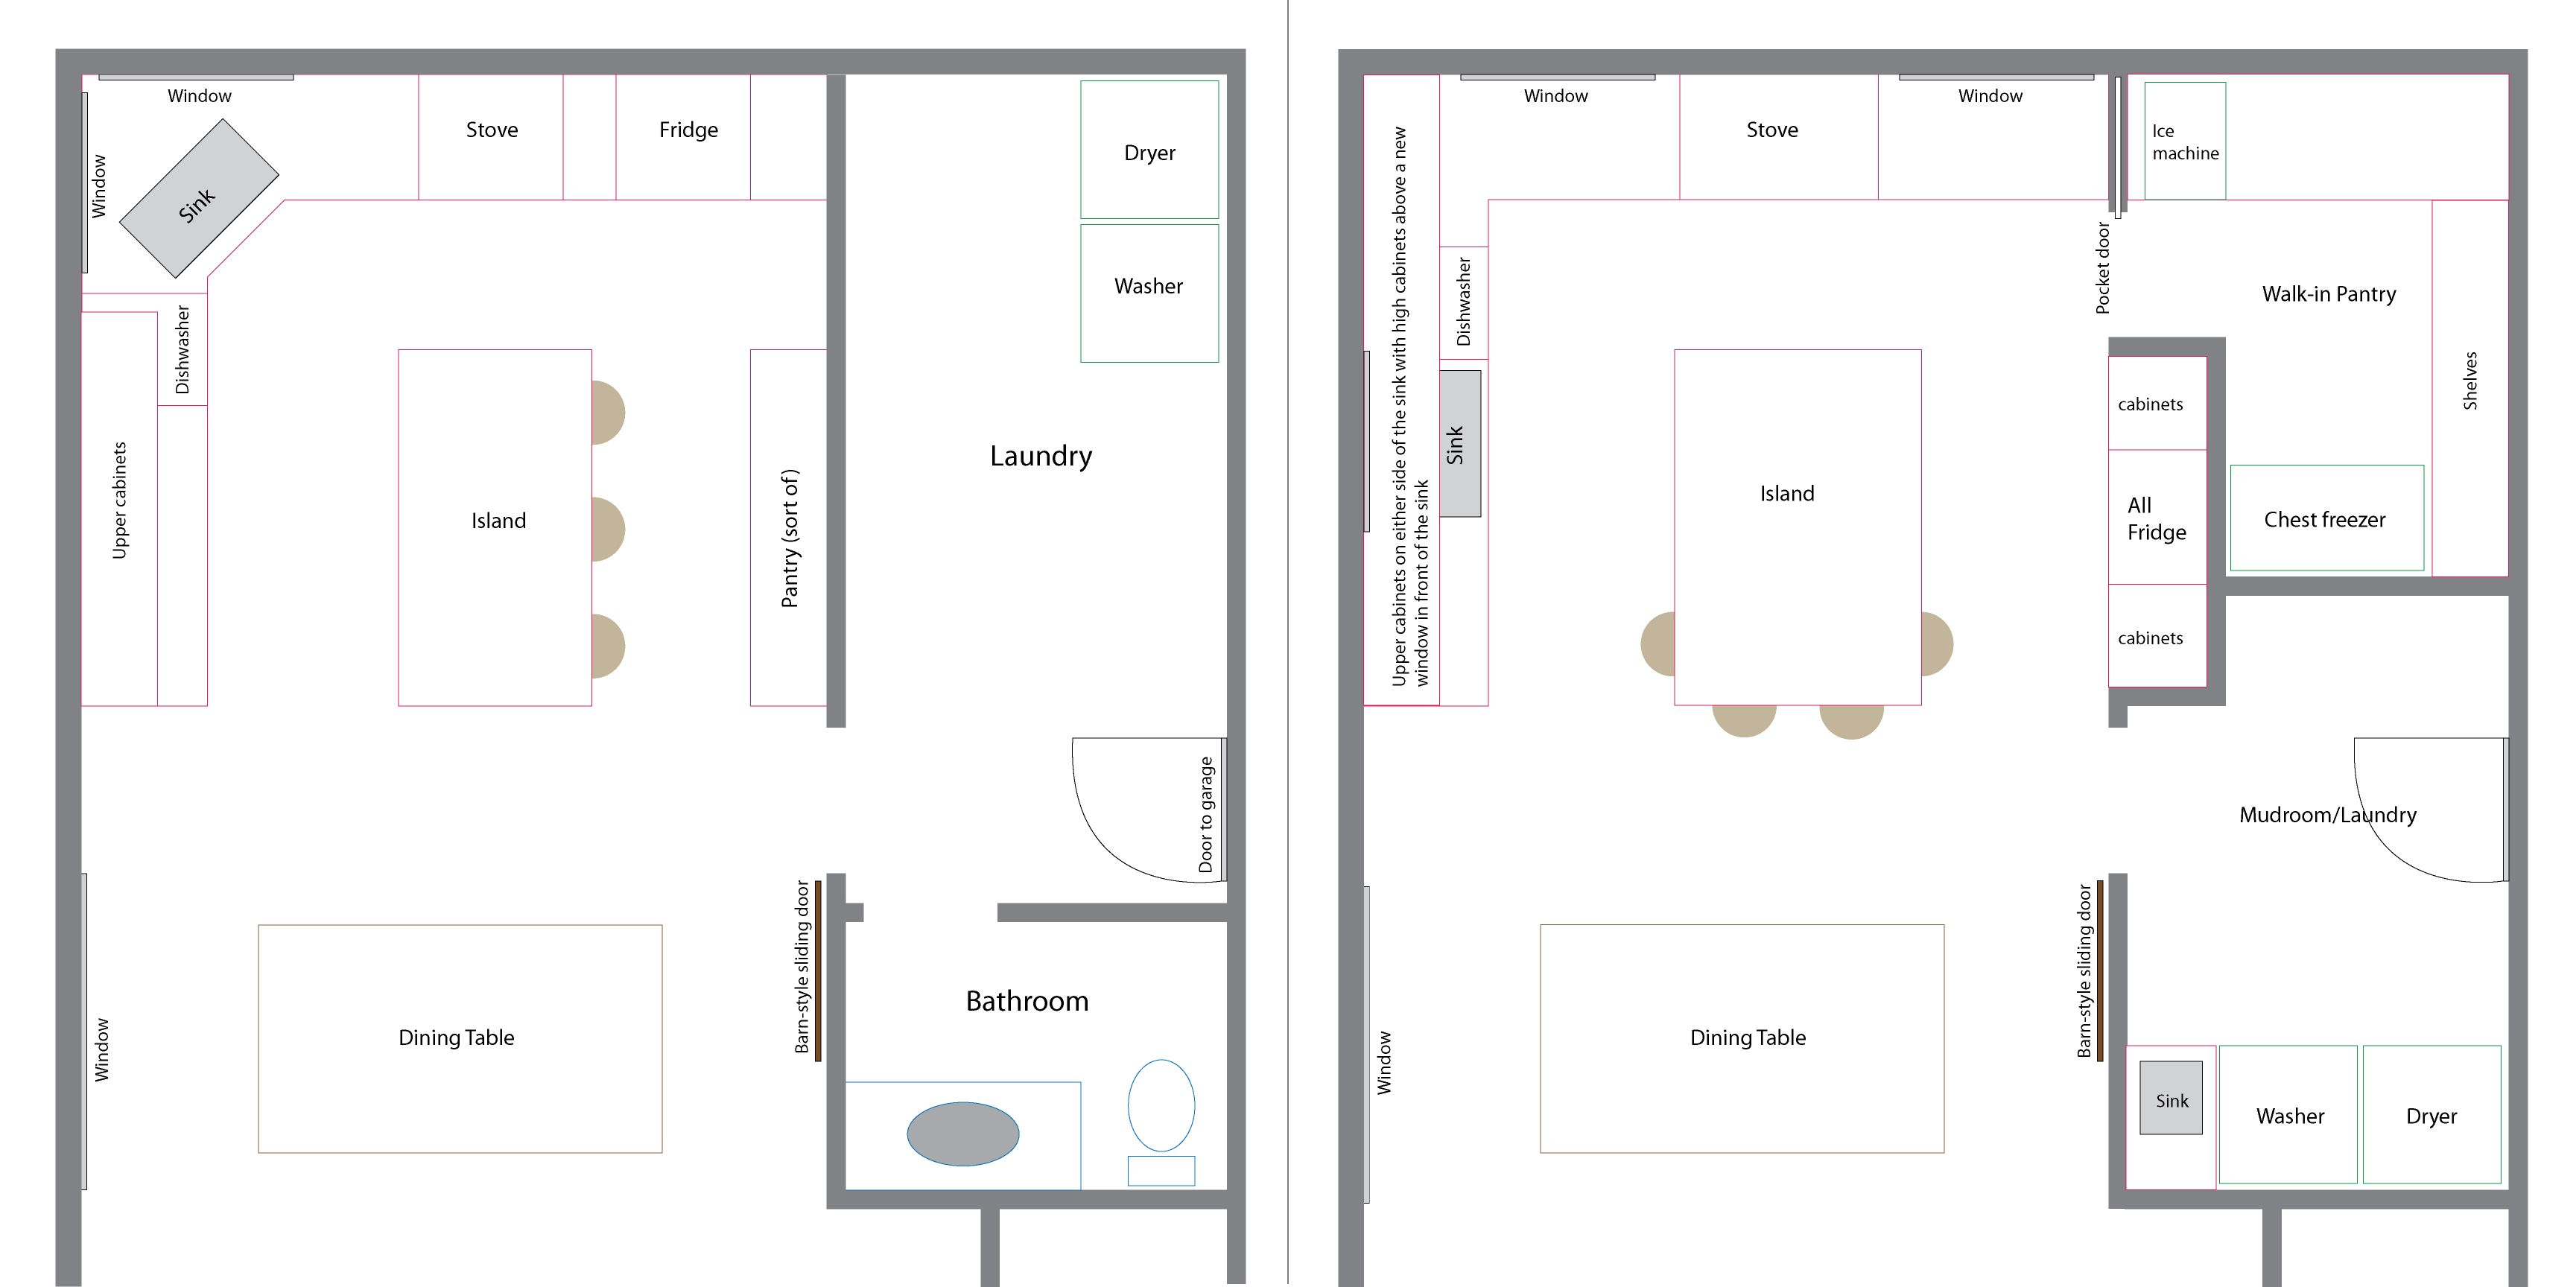 House Plans With Utility Rooms Part - 17: Old And New Floor Plans · Laundry Room ...